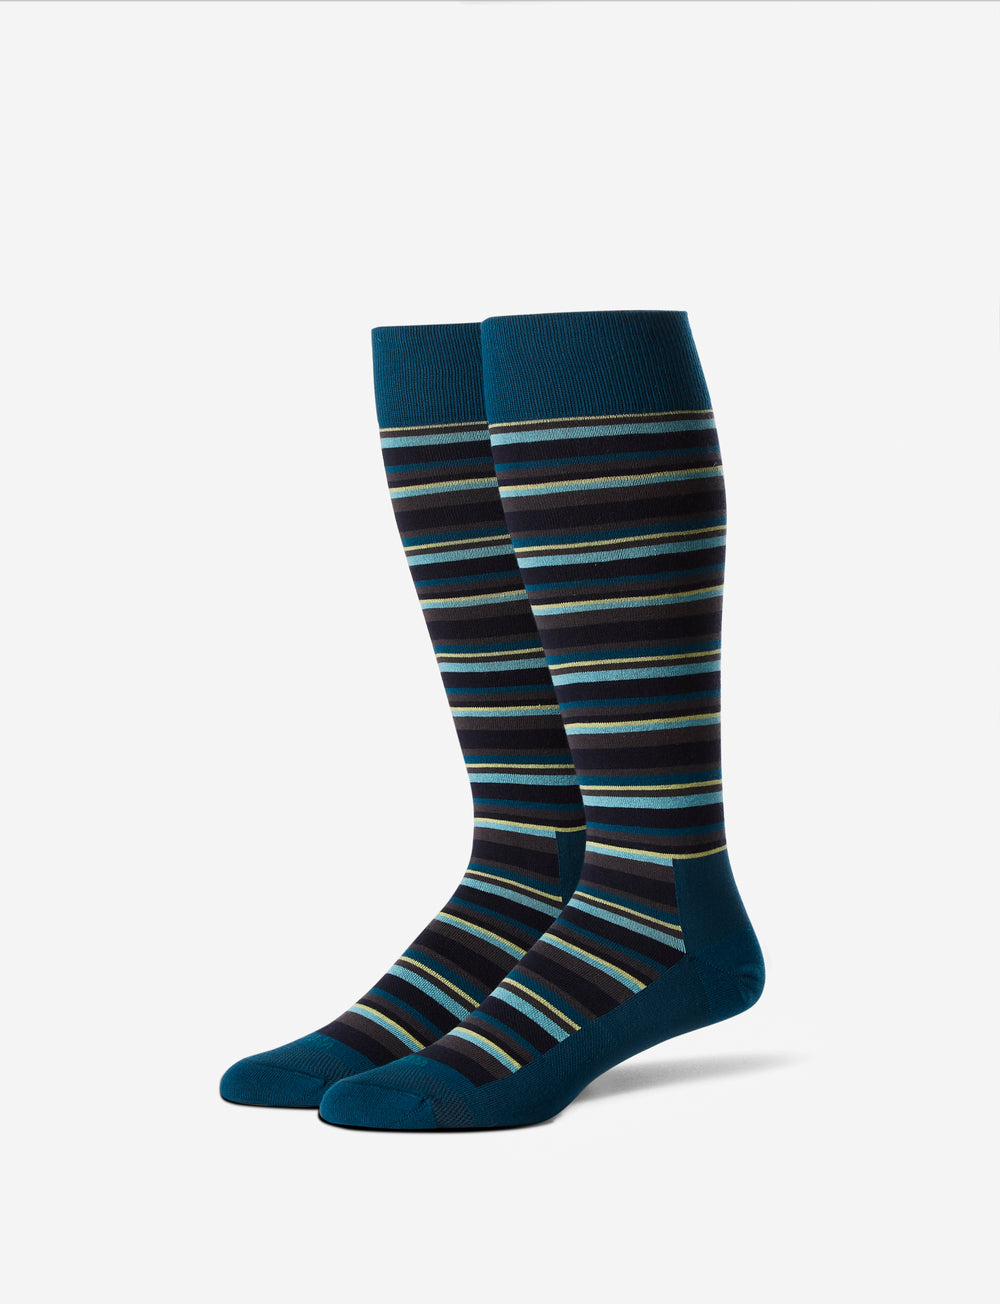 Stripe Stay-Up Dress Sock Details Image